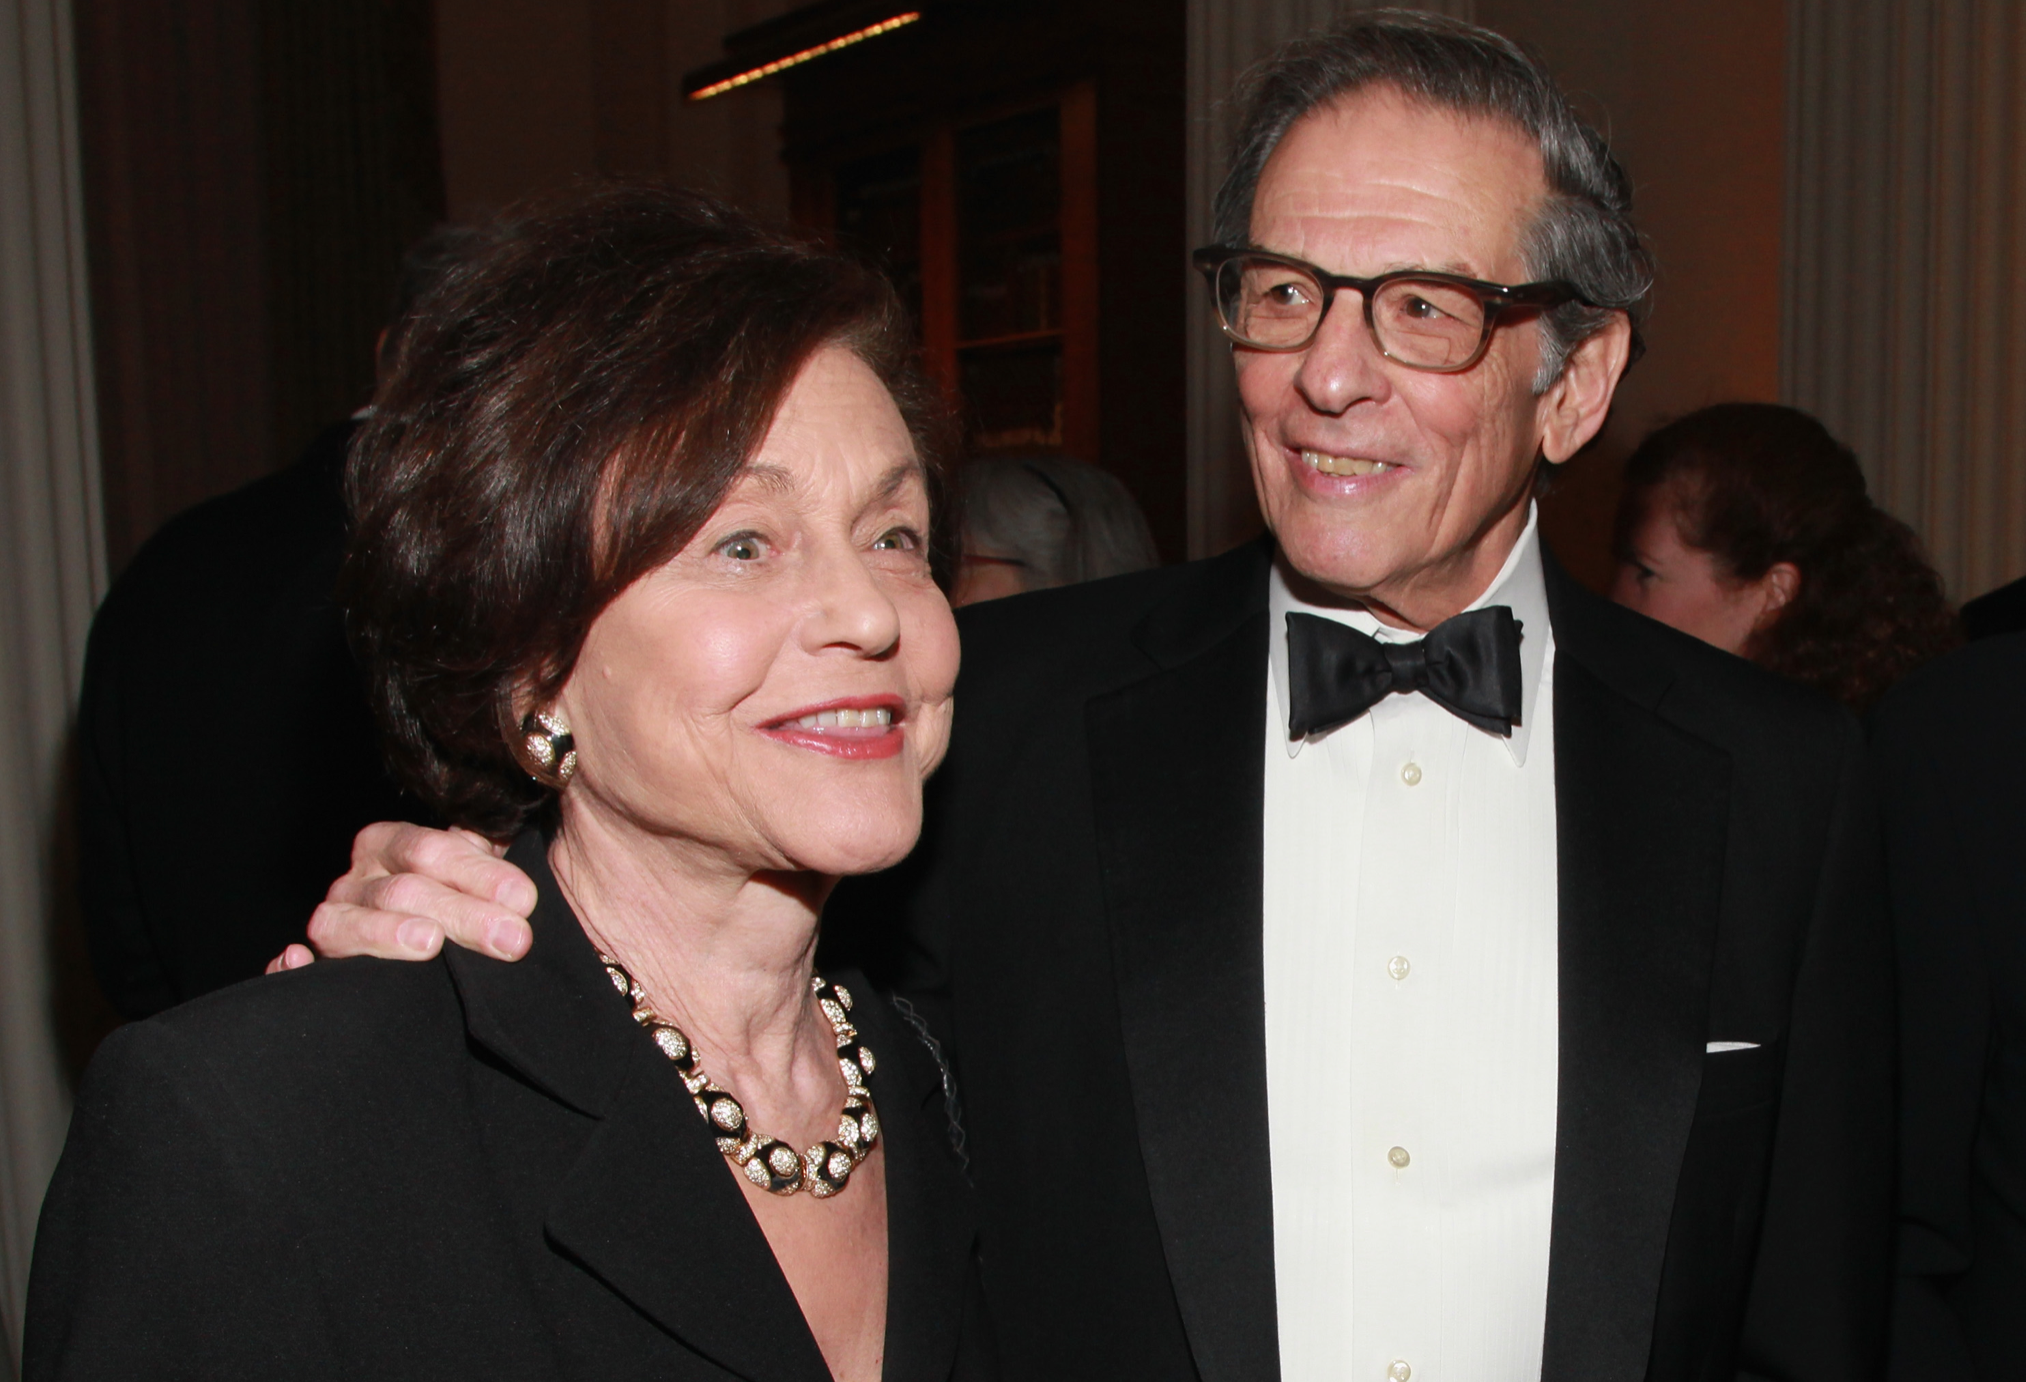 Robert Caro with his wife and research partner, Ina (Credit: Taylor Hill WireImage/Getty Images)